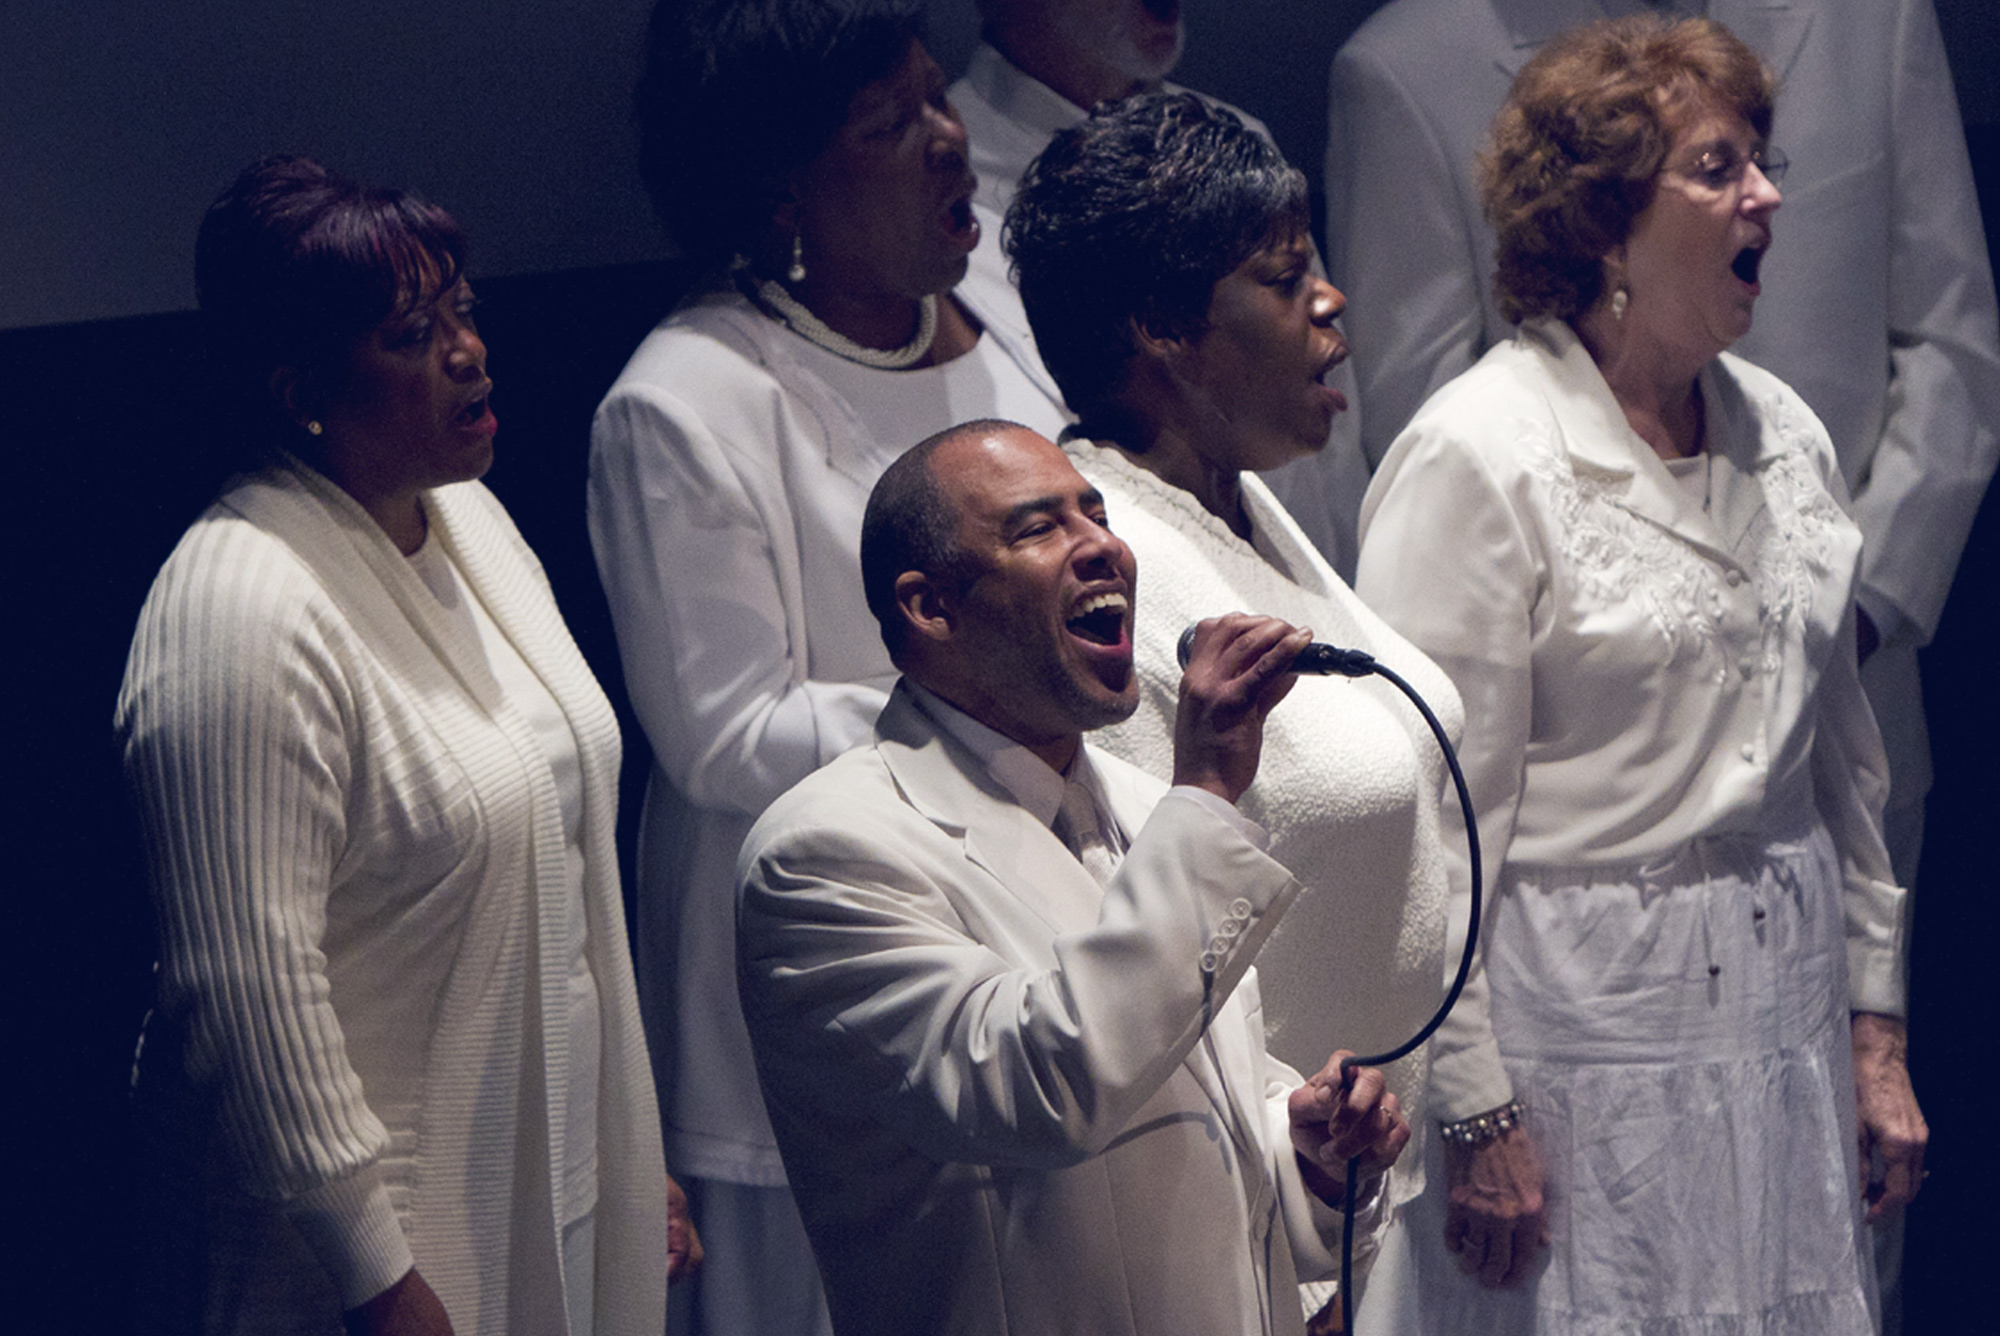 A community choir comes together each year to sing and celebrate the life and legacy of the Rev. Dr. Martin Luther King Jr.